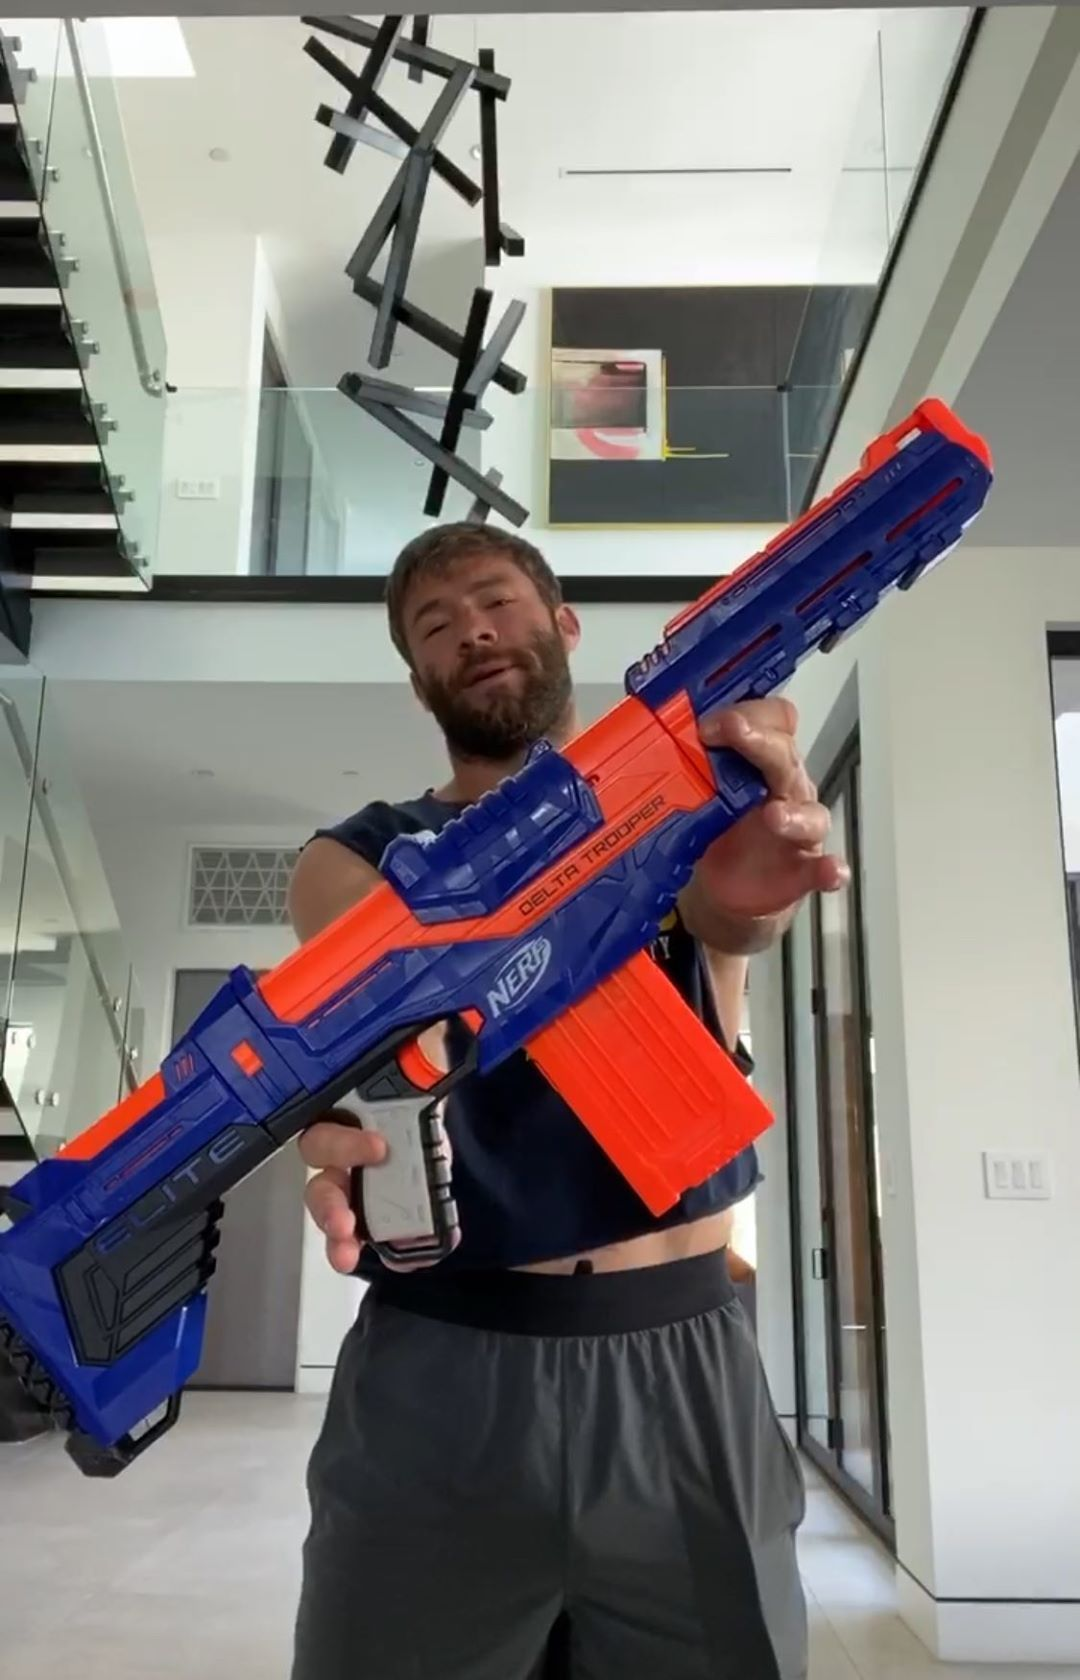 Julian Edelman On Instagram Take Seven Ish Steps Back From Your Phone Blast It As Quickly As You Can With Your Tru In 2020 Julian Edelman Edelman Julian